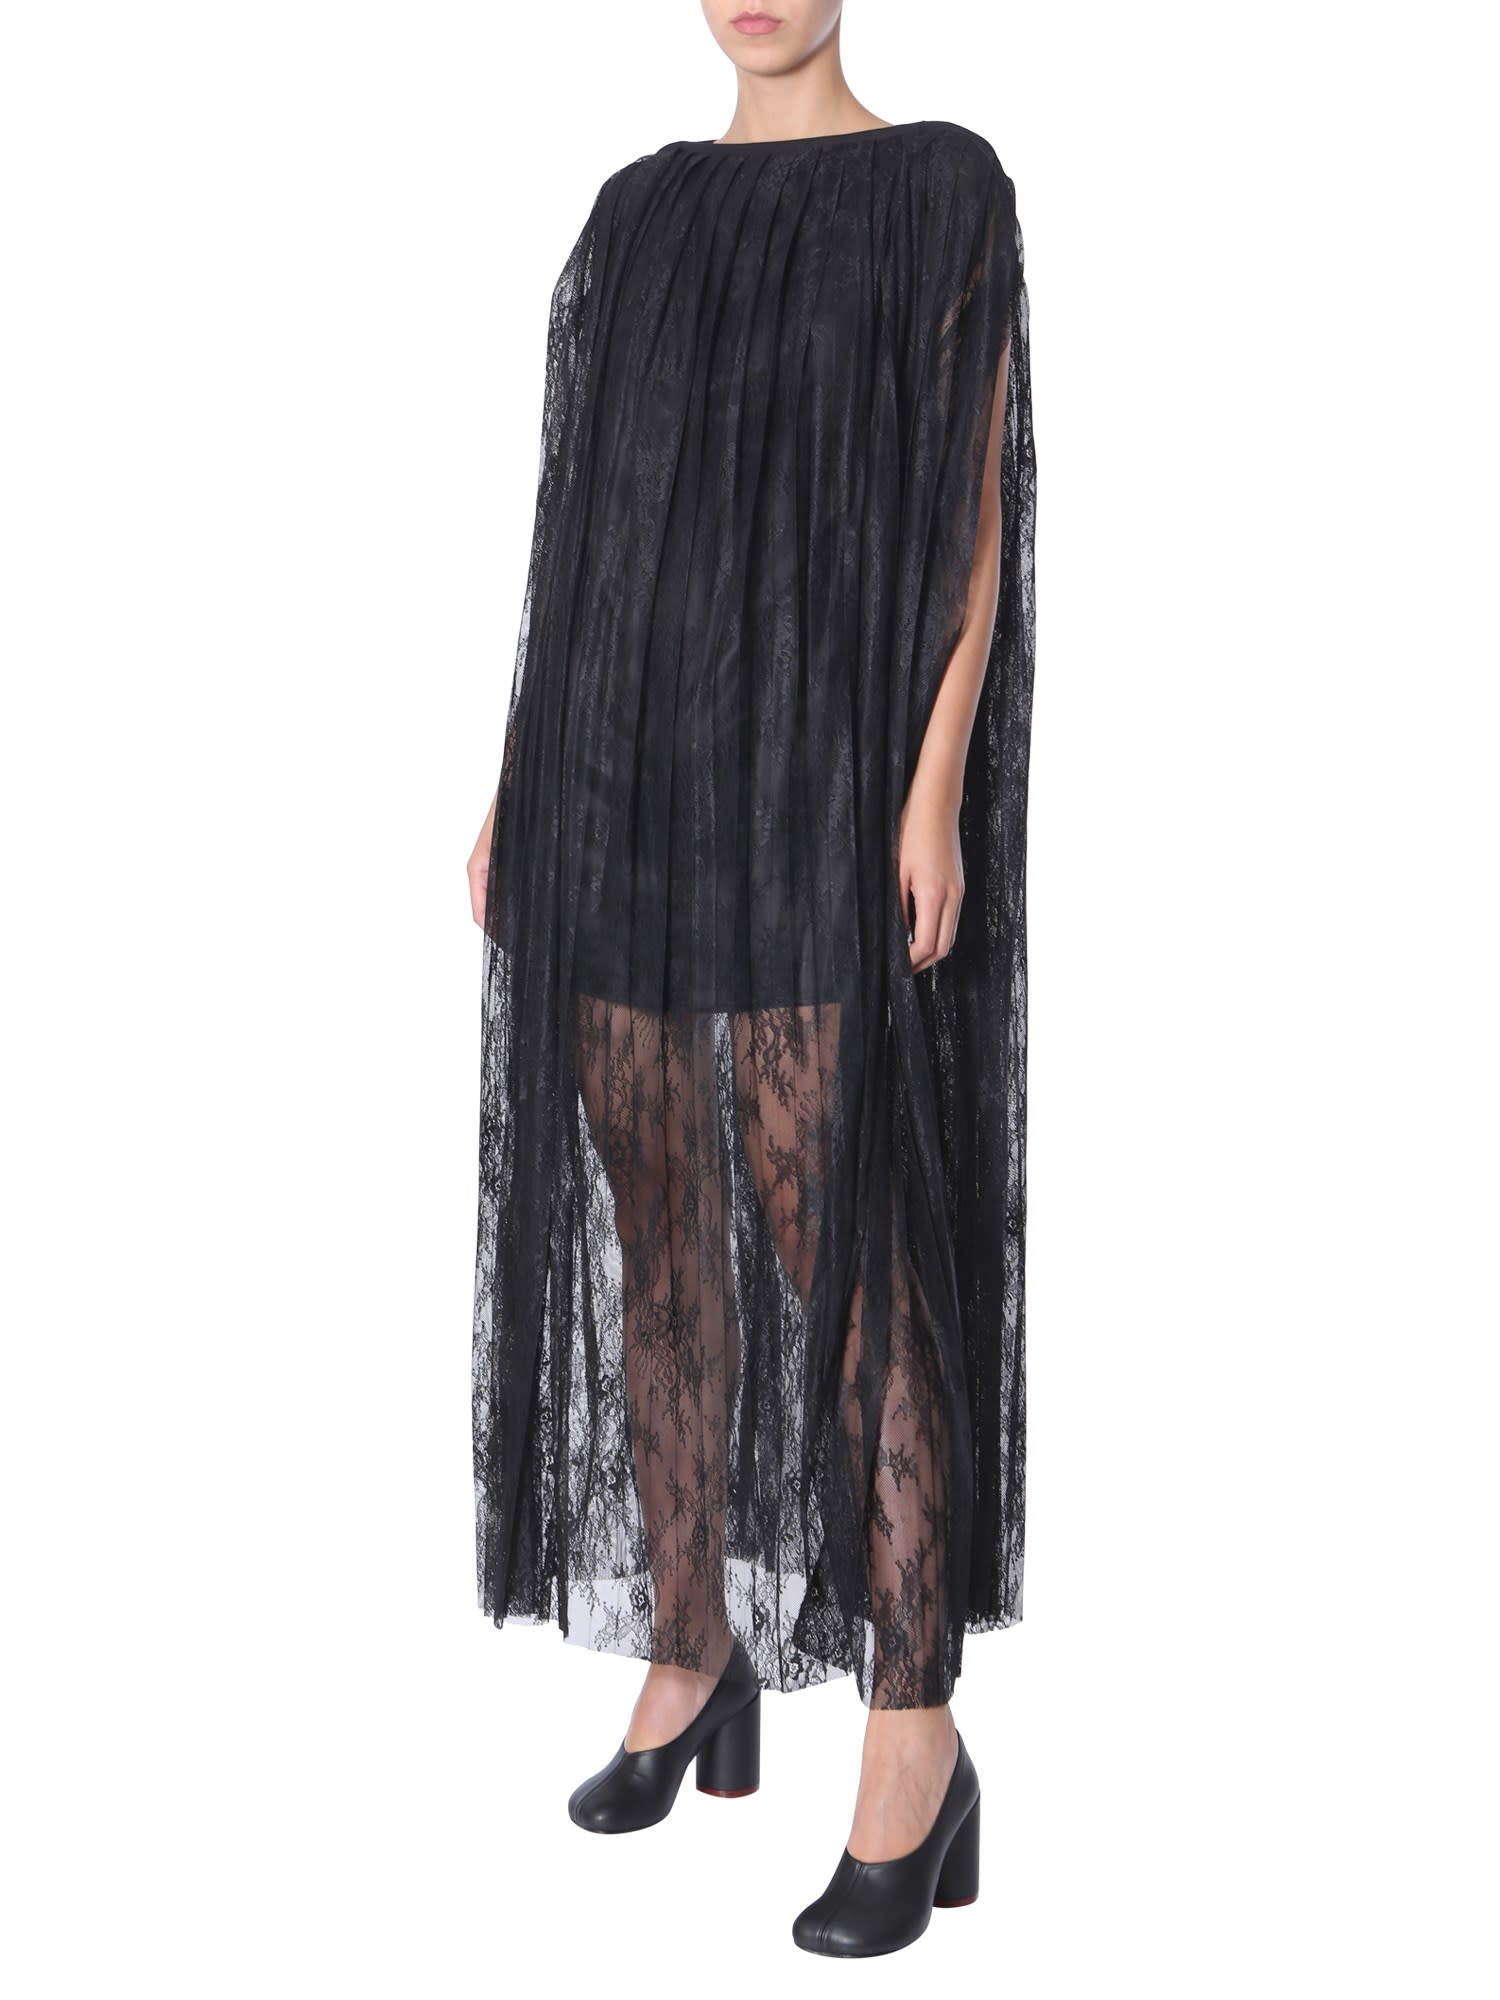 MM6 Maison Margiela Pleated Lace Dress